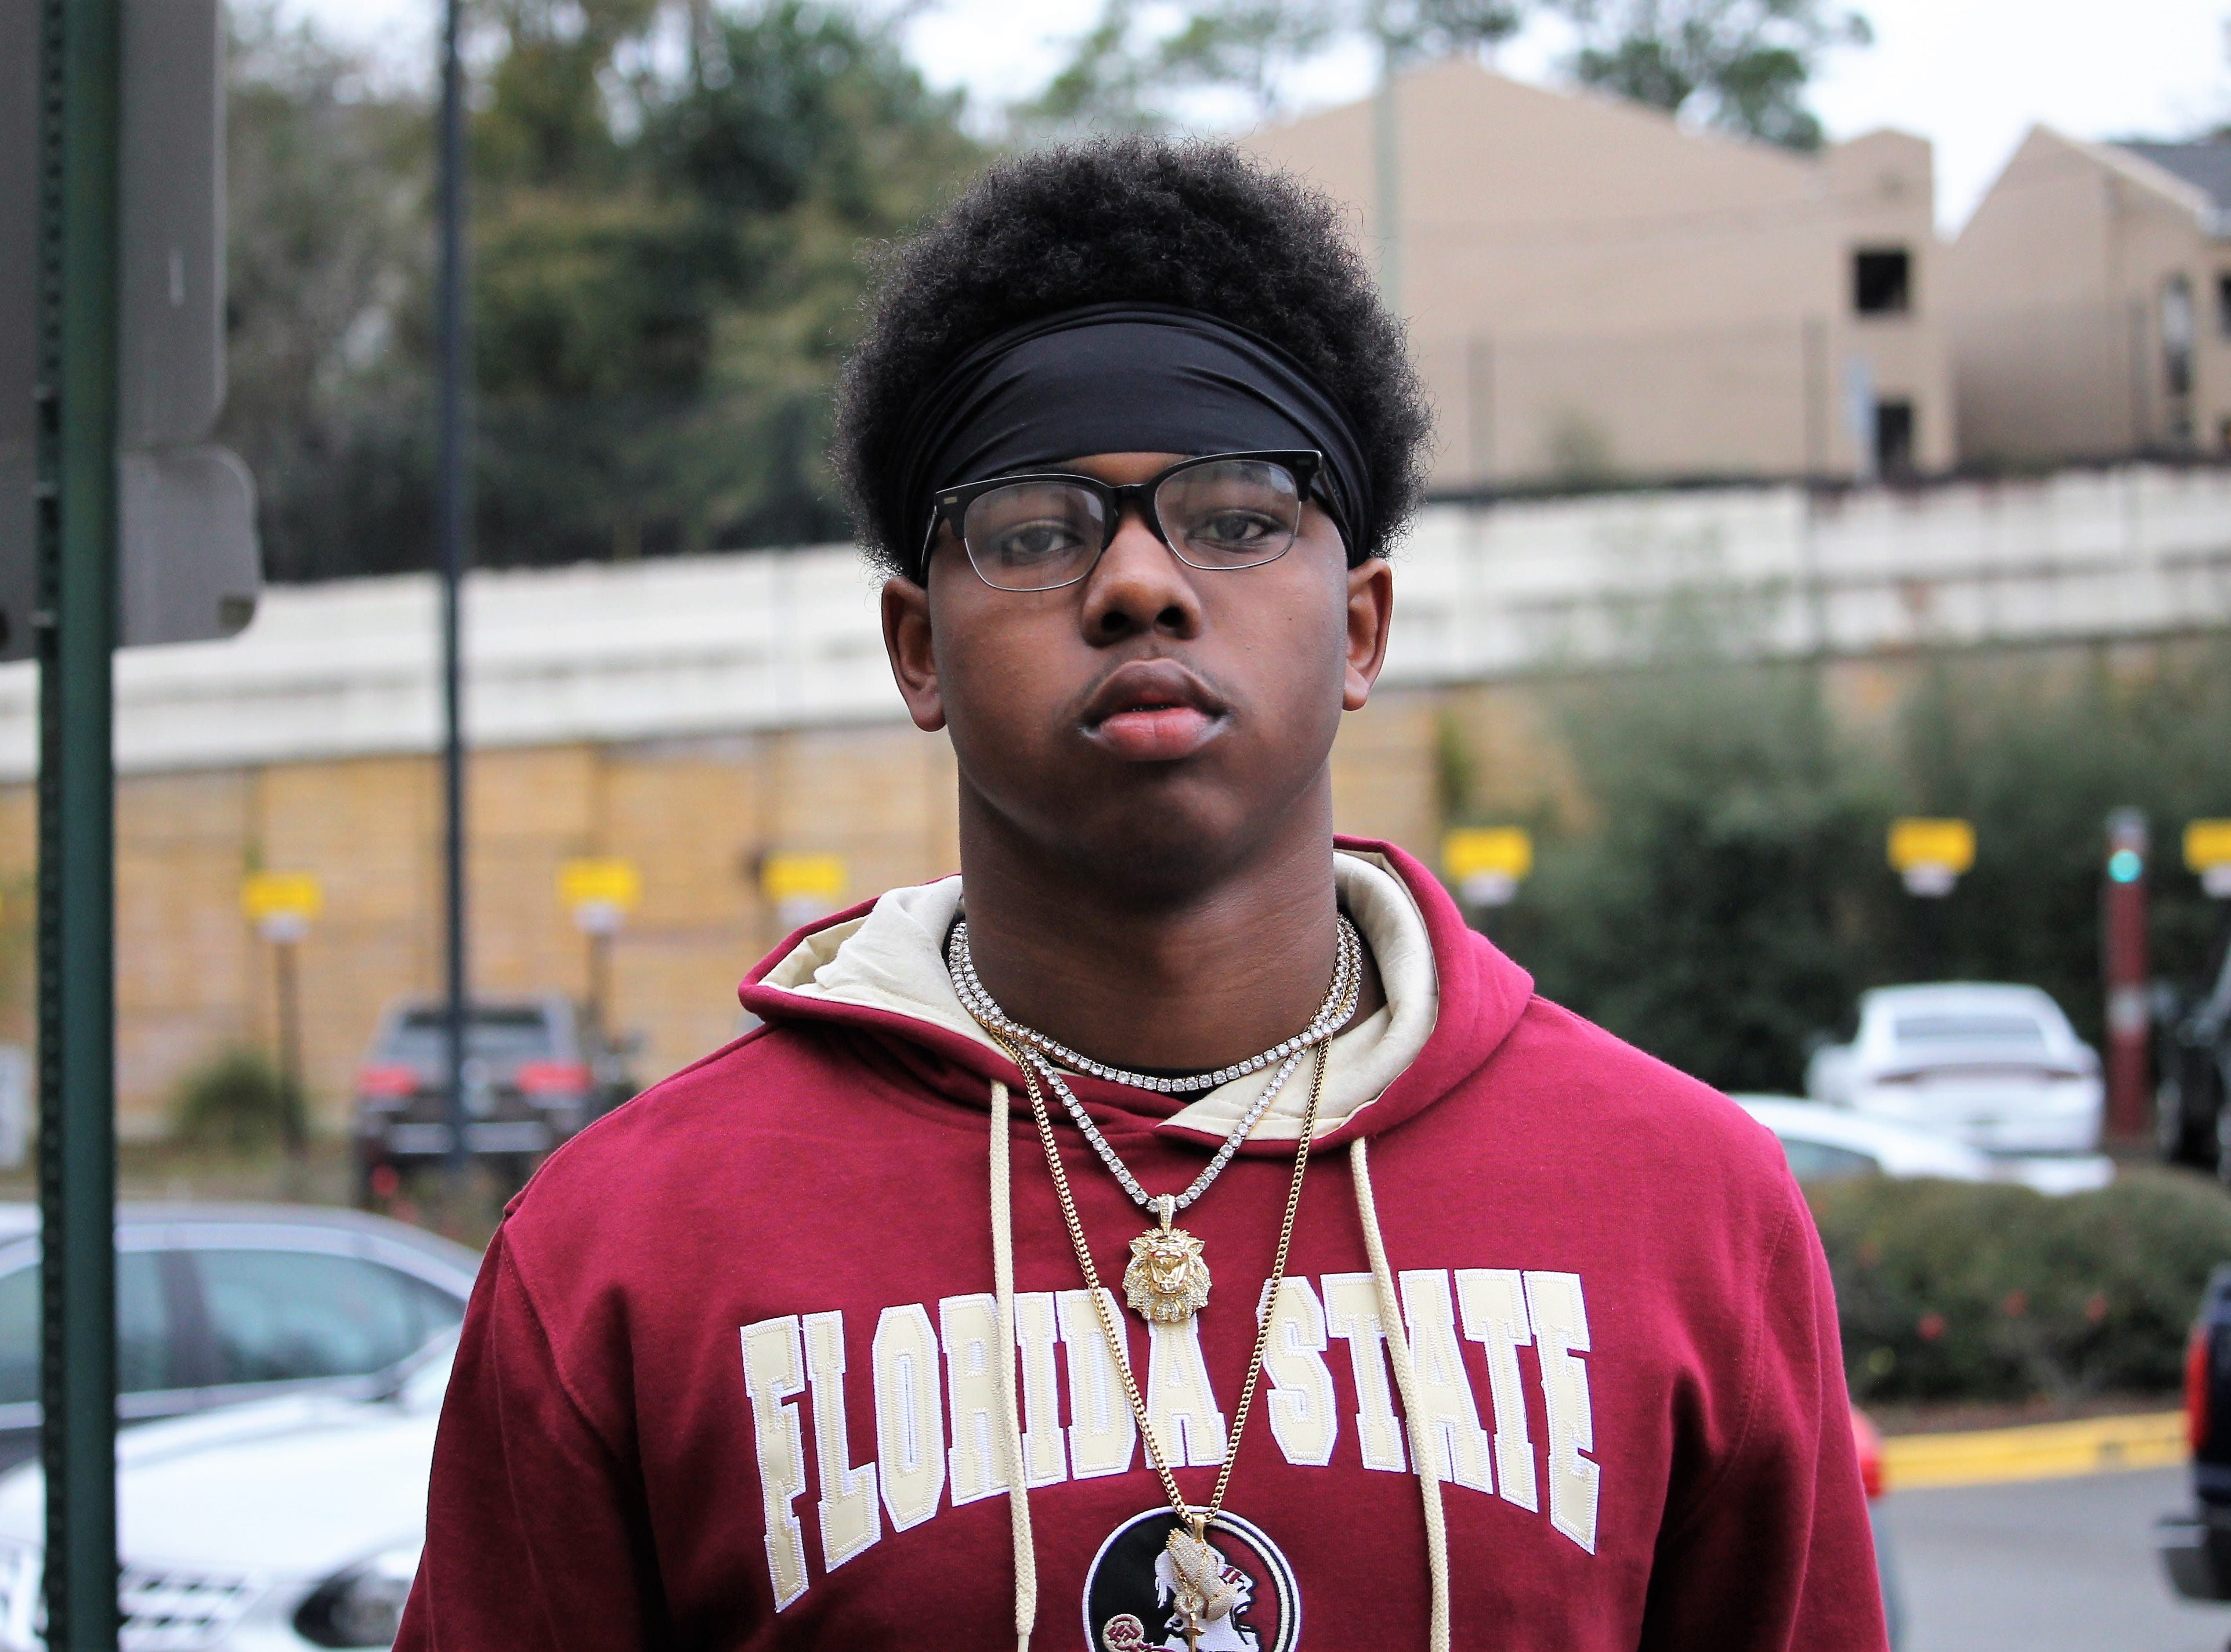 2020 four-star outside linebacker Jaylen Harrell at FSU junior day on Feb. 2, 2019